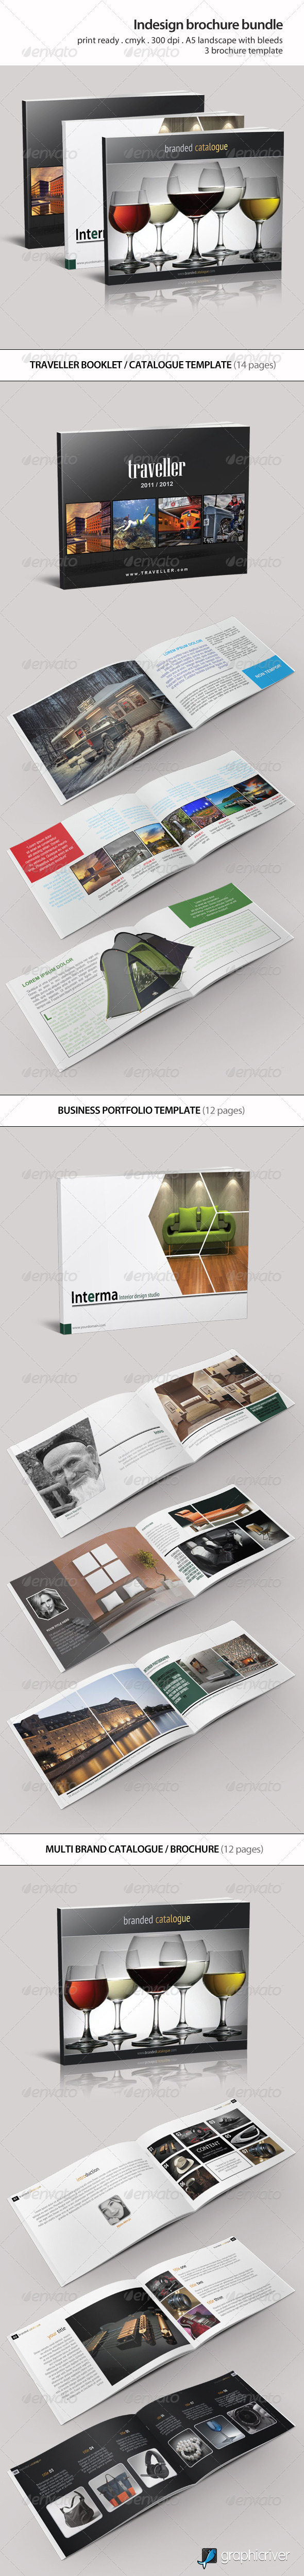 GraphicRiver Indesign Brochure Bundle Vol 1 5947218